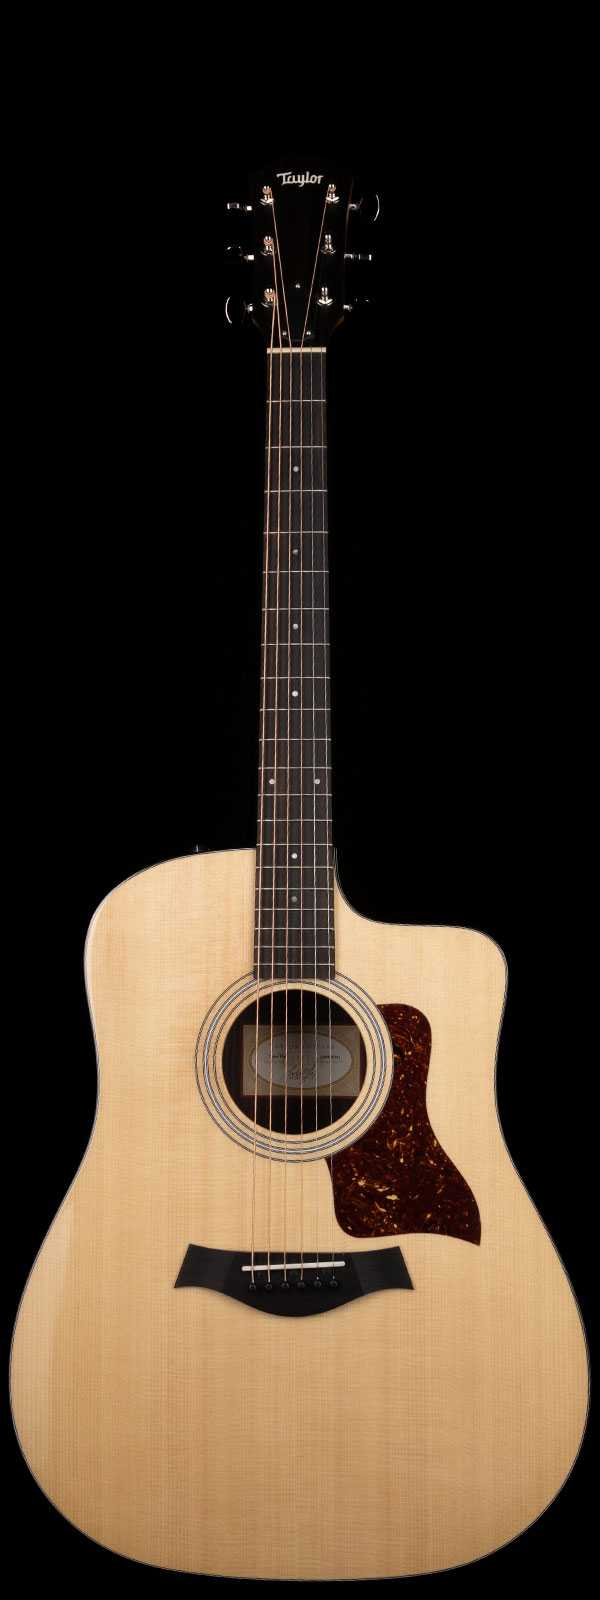 Taylor 210ce Plus Natural Finish